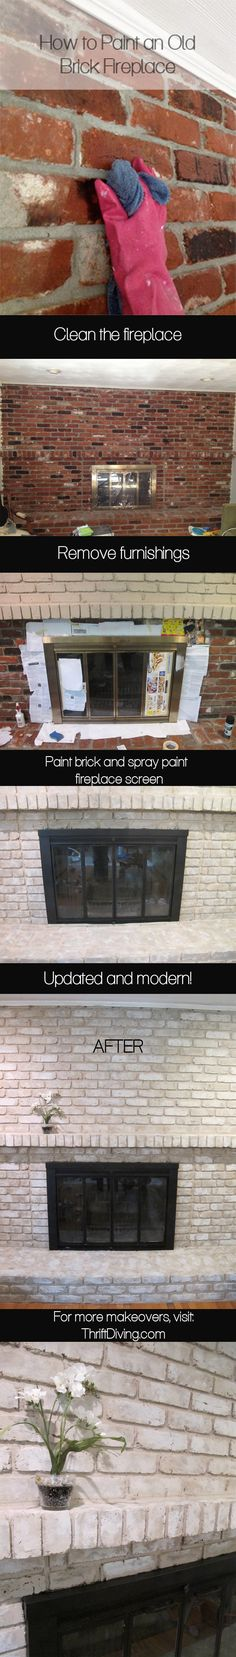 Most current Pic Brick Fireplace remodel Ideas It often gives to omit the particular renovate! Instead of extracting a strong aged brick fireplace , save money but sti Fireplace Update, Paint Fireplace, Brick Fireplace Makeover, Fireplace Remodel, Brick Fireplaces, Fireplace Ideas, Fireplace Mantels, Foyers, Old Bricks